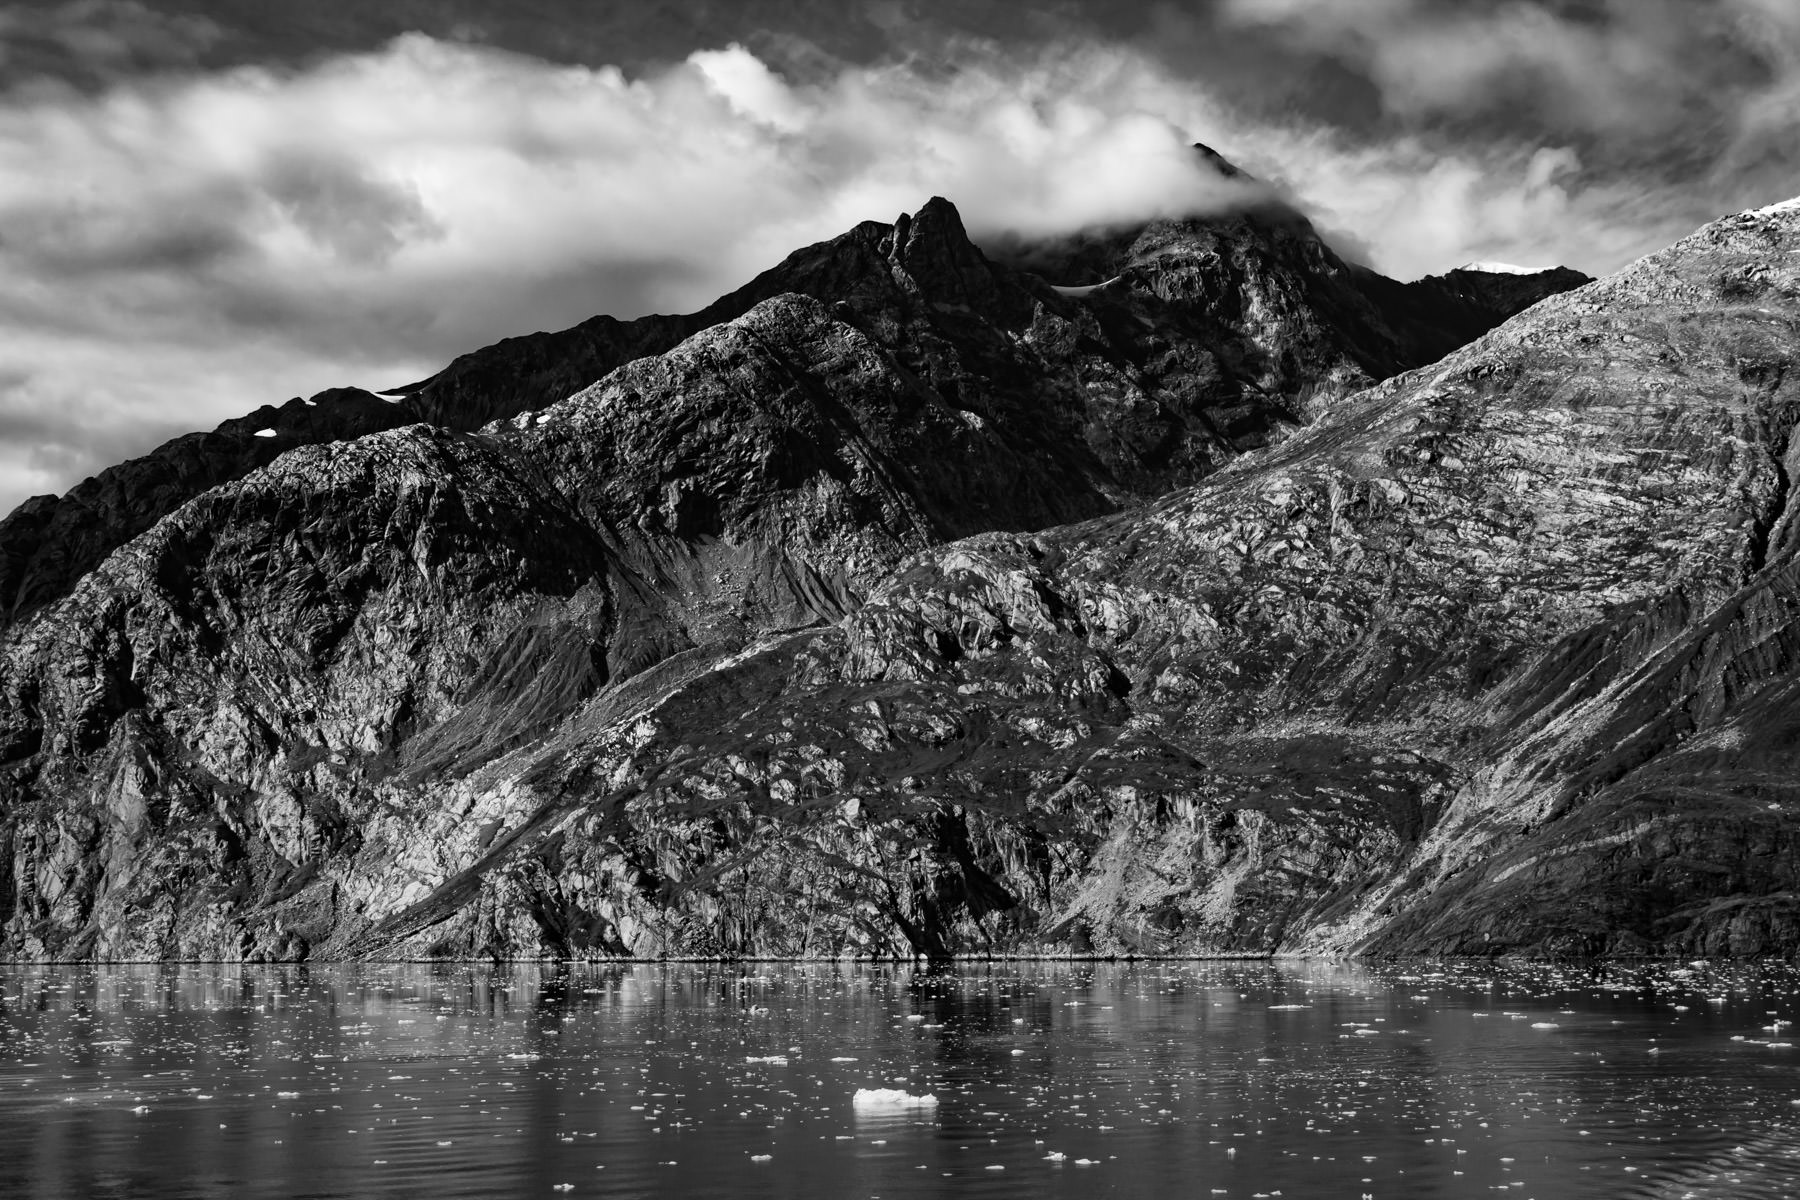 Rugged mountains along the shore of Alaska's Glacier Bay reach into the clouds.